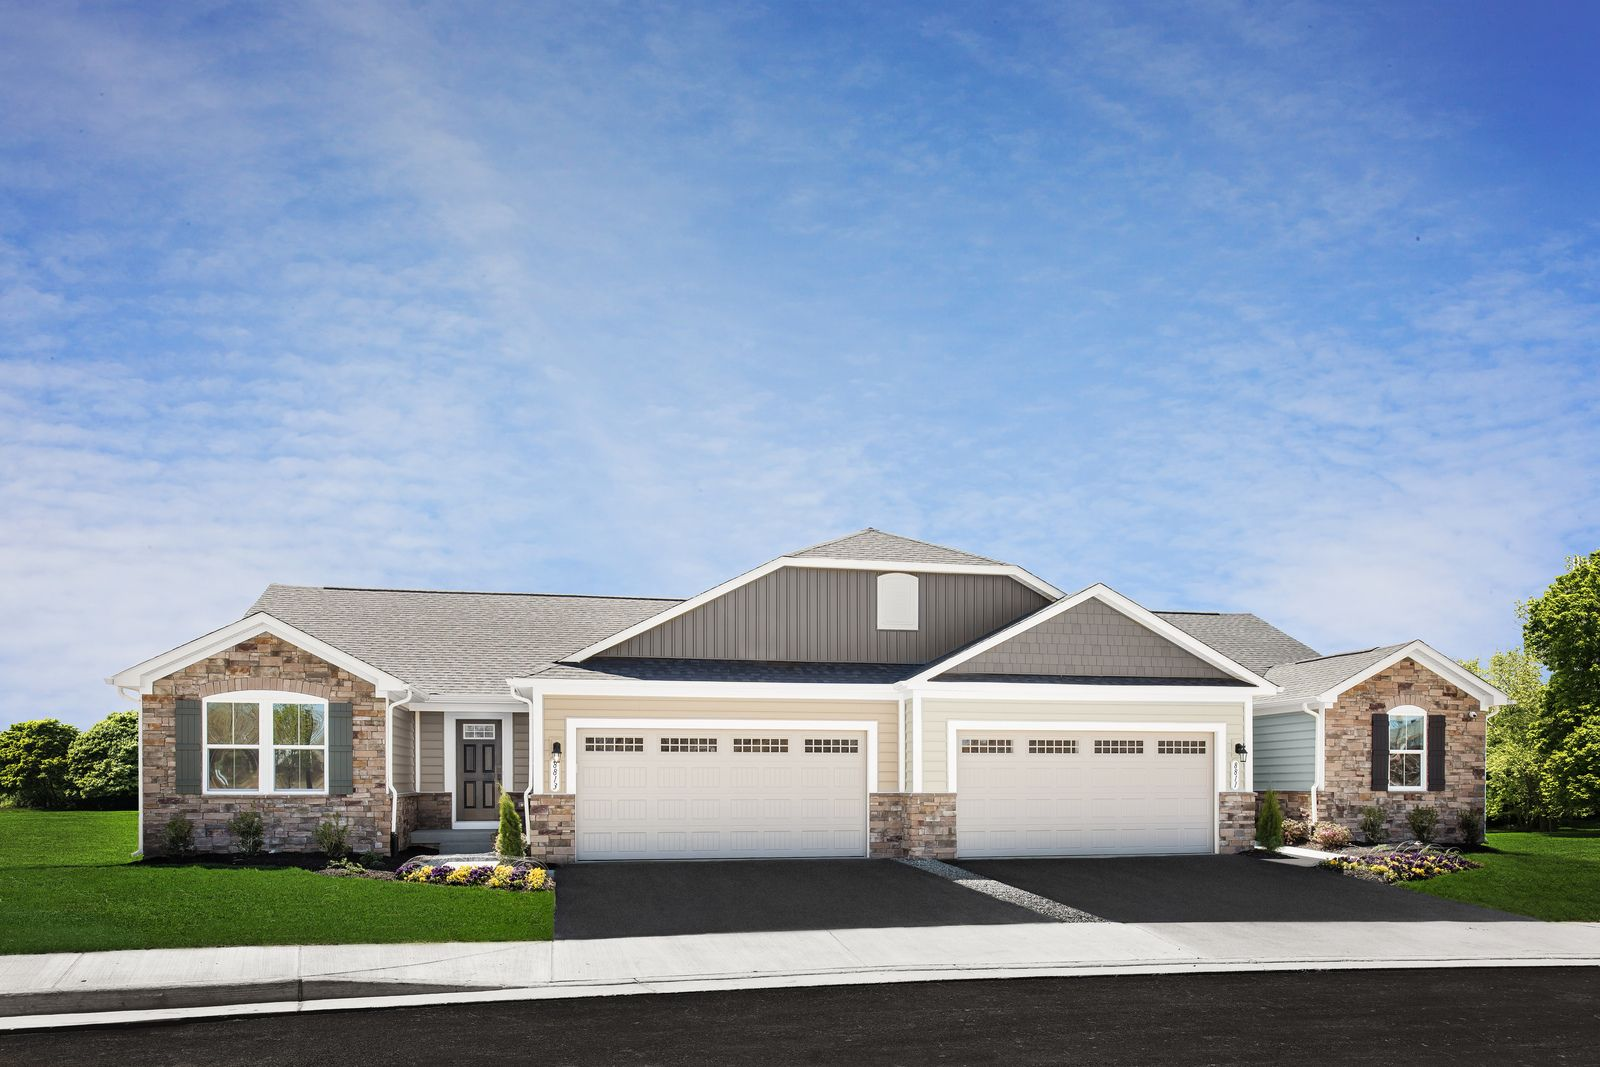 With 50 Homes Sold At South Peak In 2020, The Only Thing Missing Is YOU! Schedule your visit & receive $2500 Toward Closing Costs For A Limited Time!